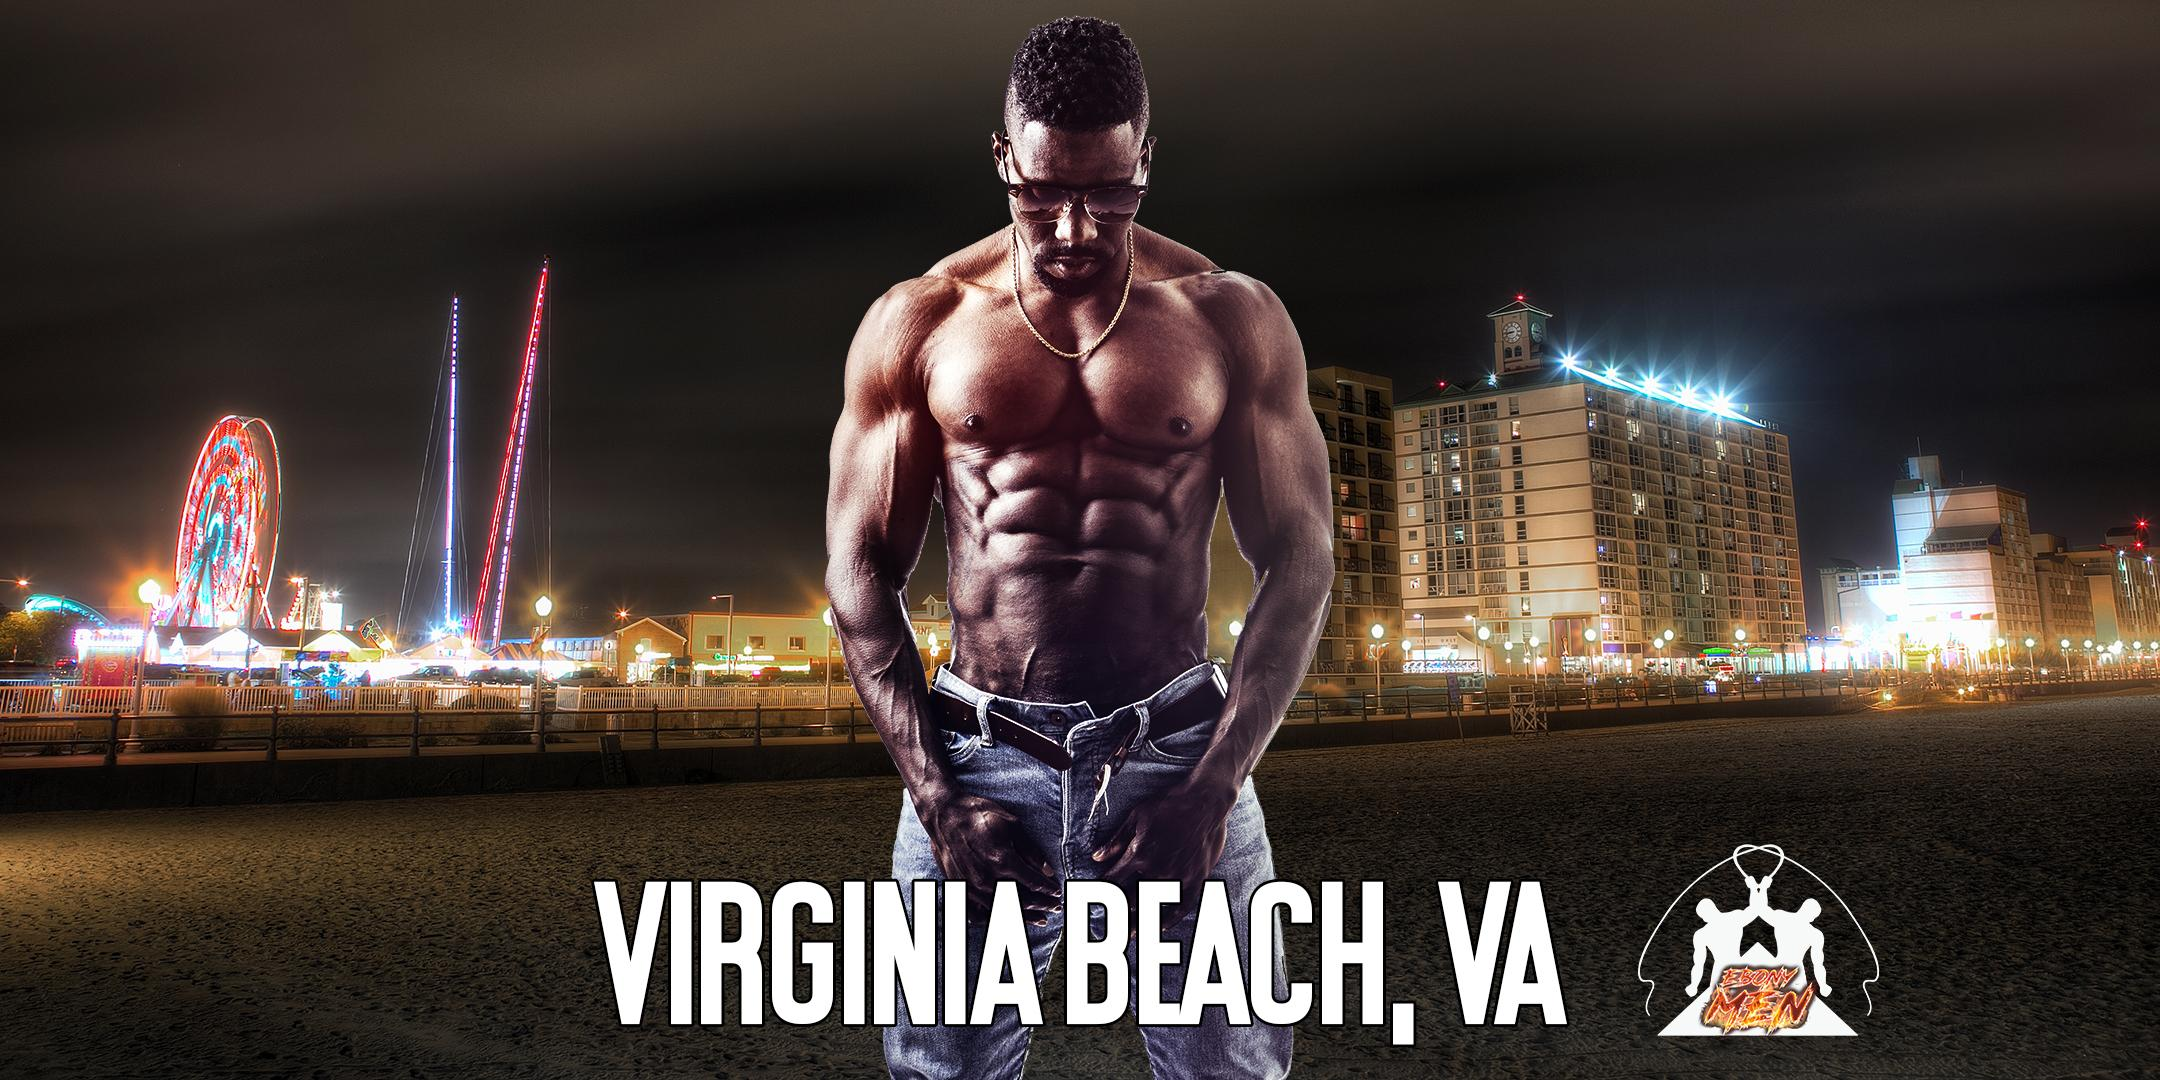 Ebony Men Black Male Revue Strip Clubs & Black Male Strippers Virginia Beach, VA 8-10PM